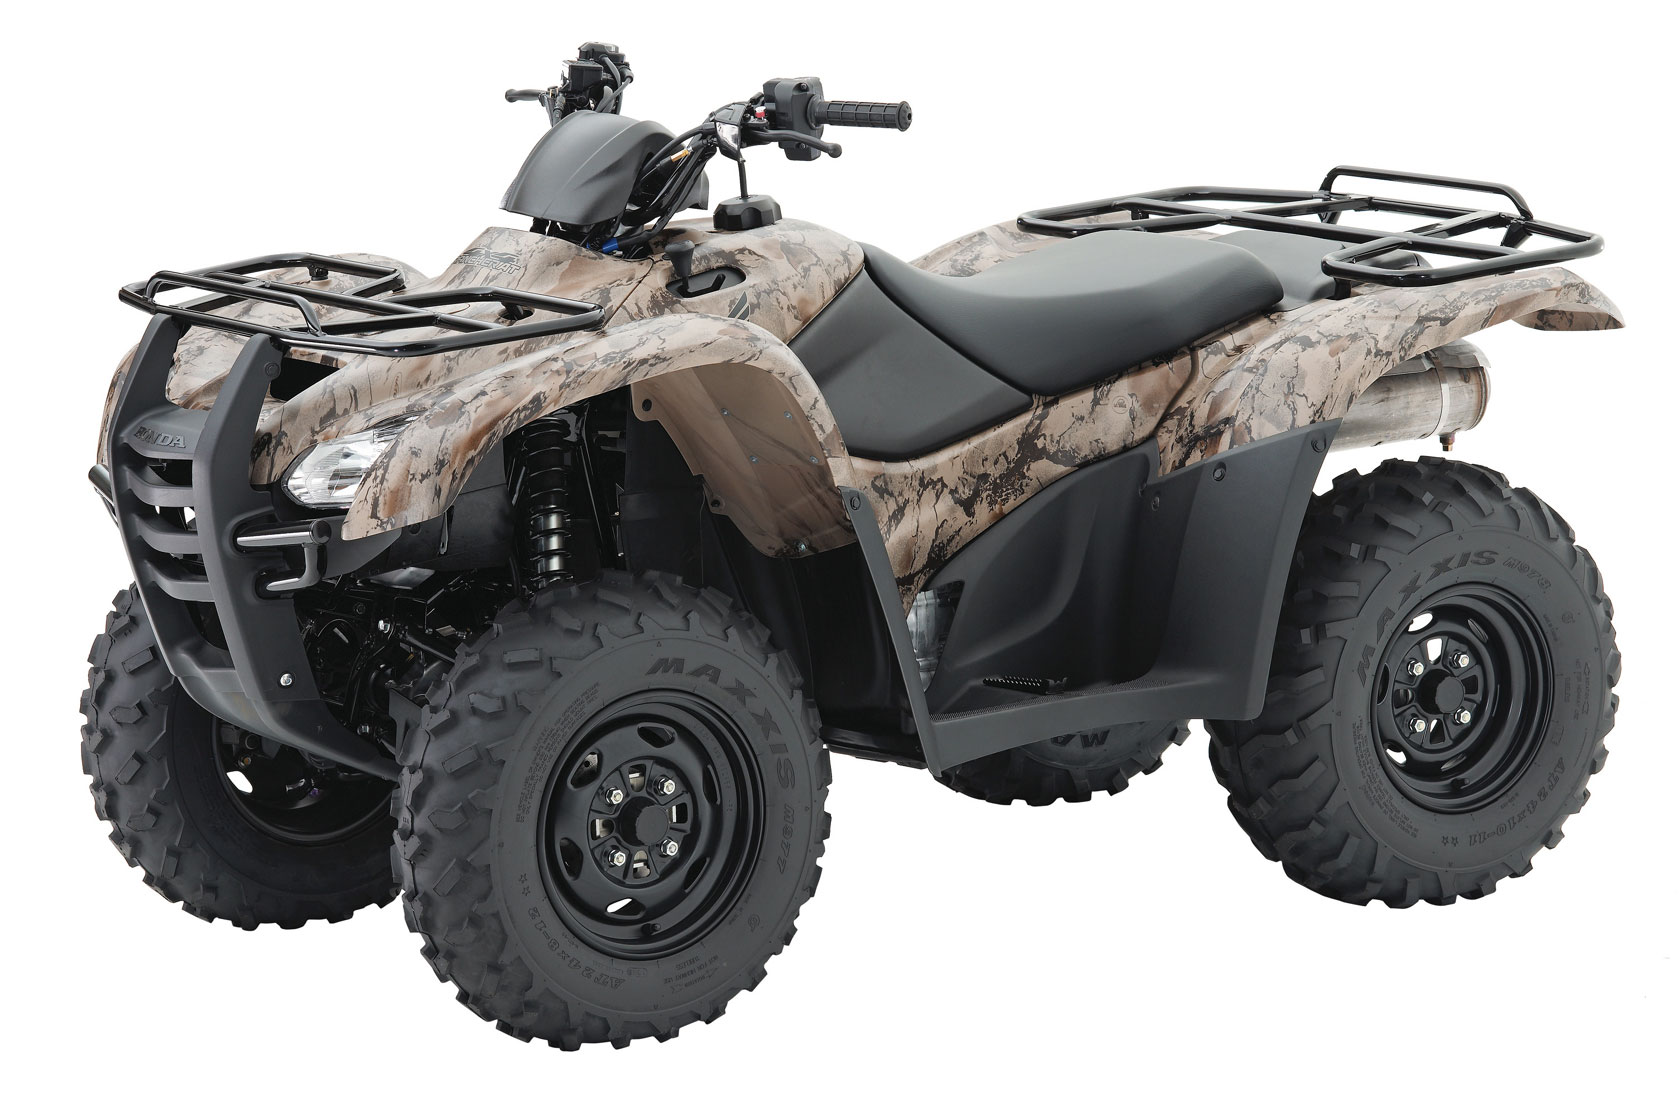 honda fourtrax rancher at trx420fa specs 2008 2009 autoevolution. Black Bedroom Furniture Sets. Home Design Ideas